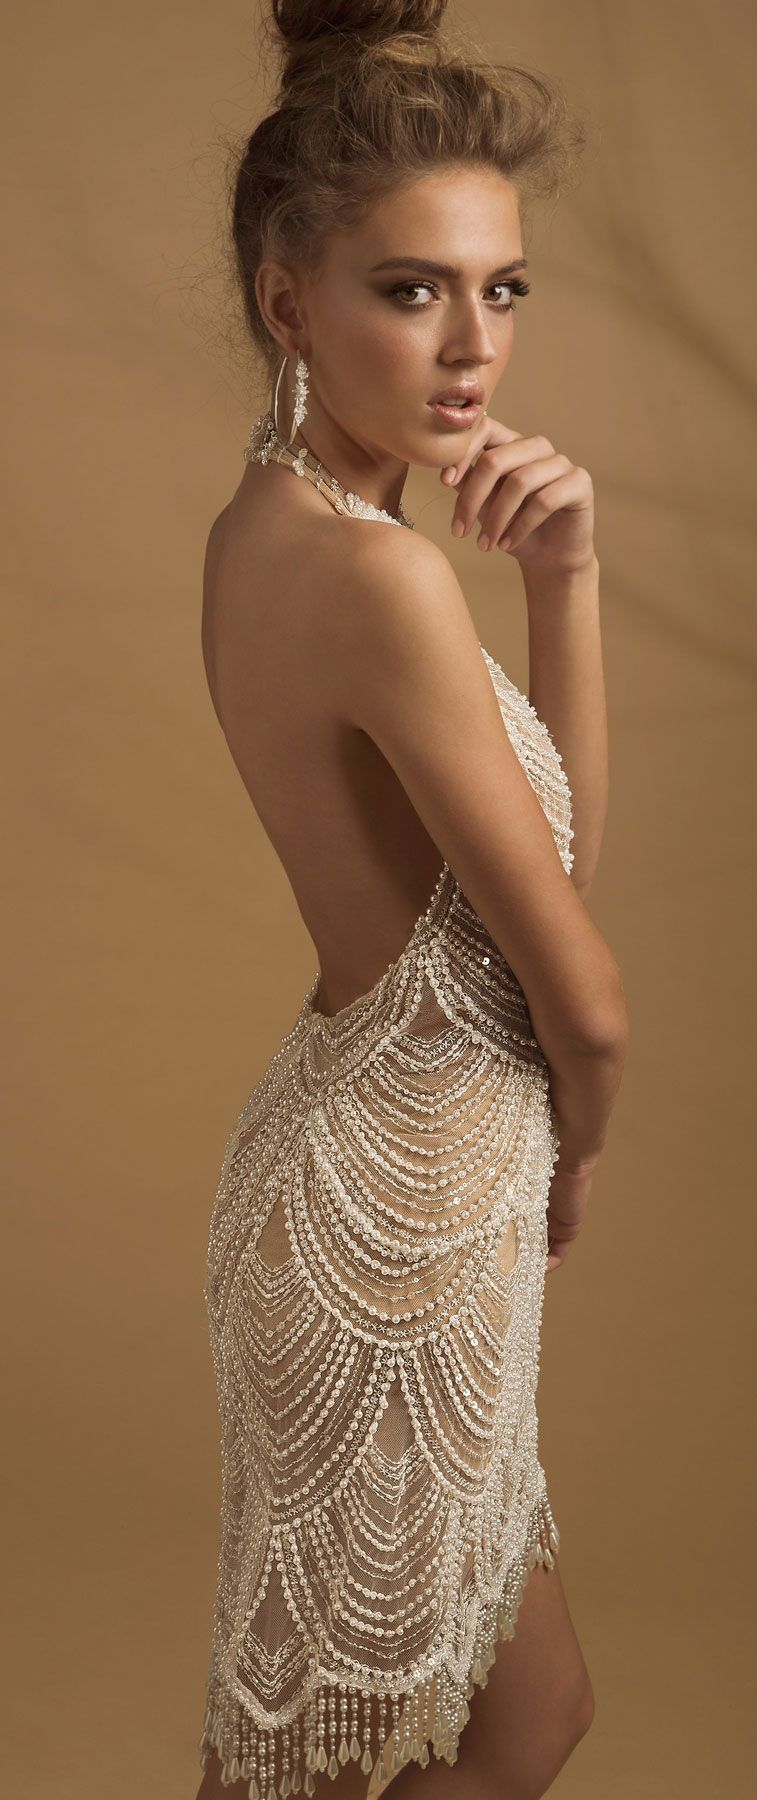 Halter neckline heavy embellishment short wedding dress #wedding #weddingdress #weddinggown